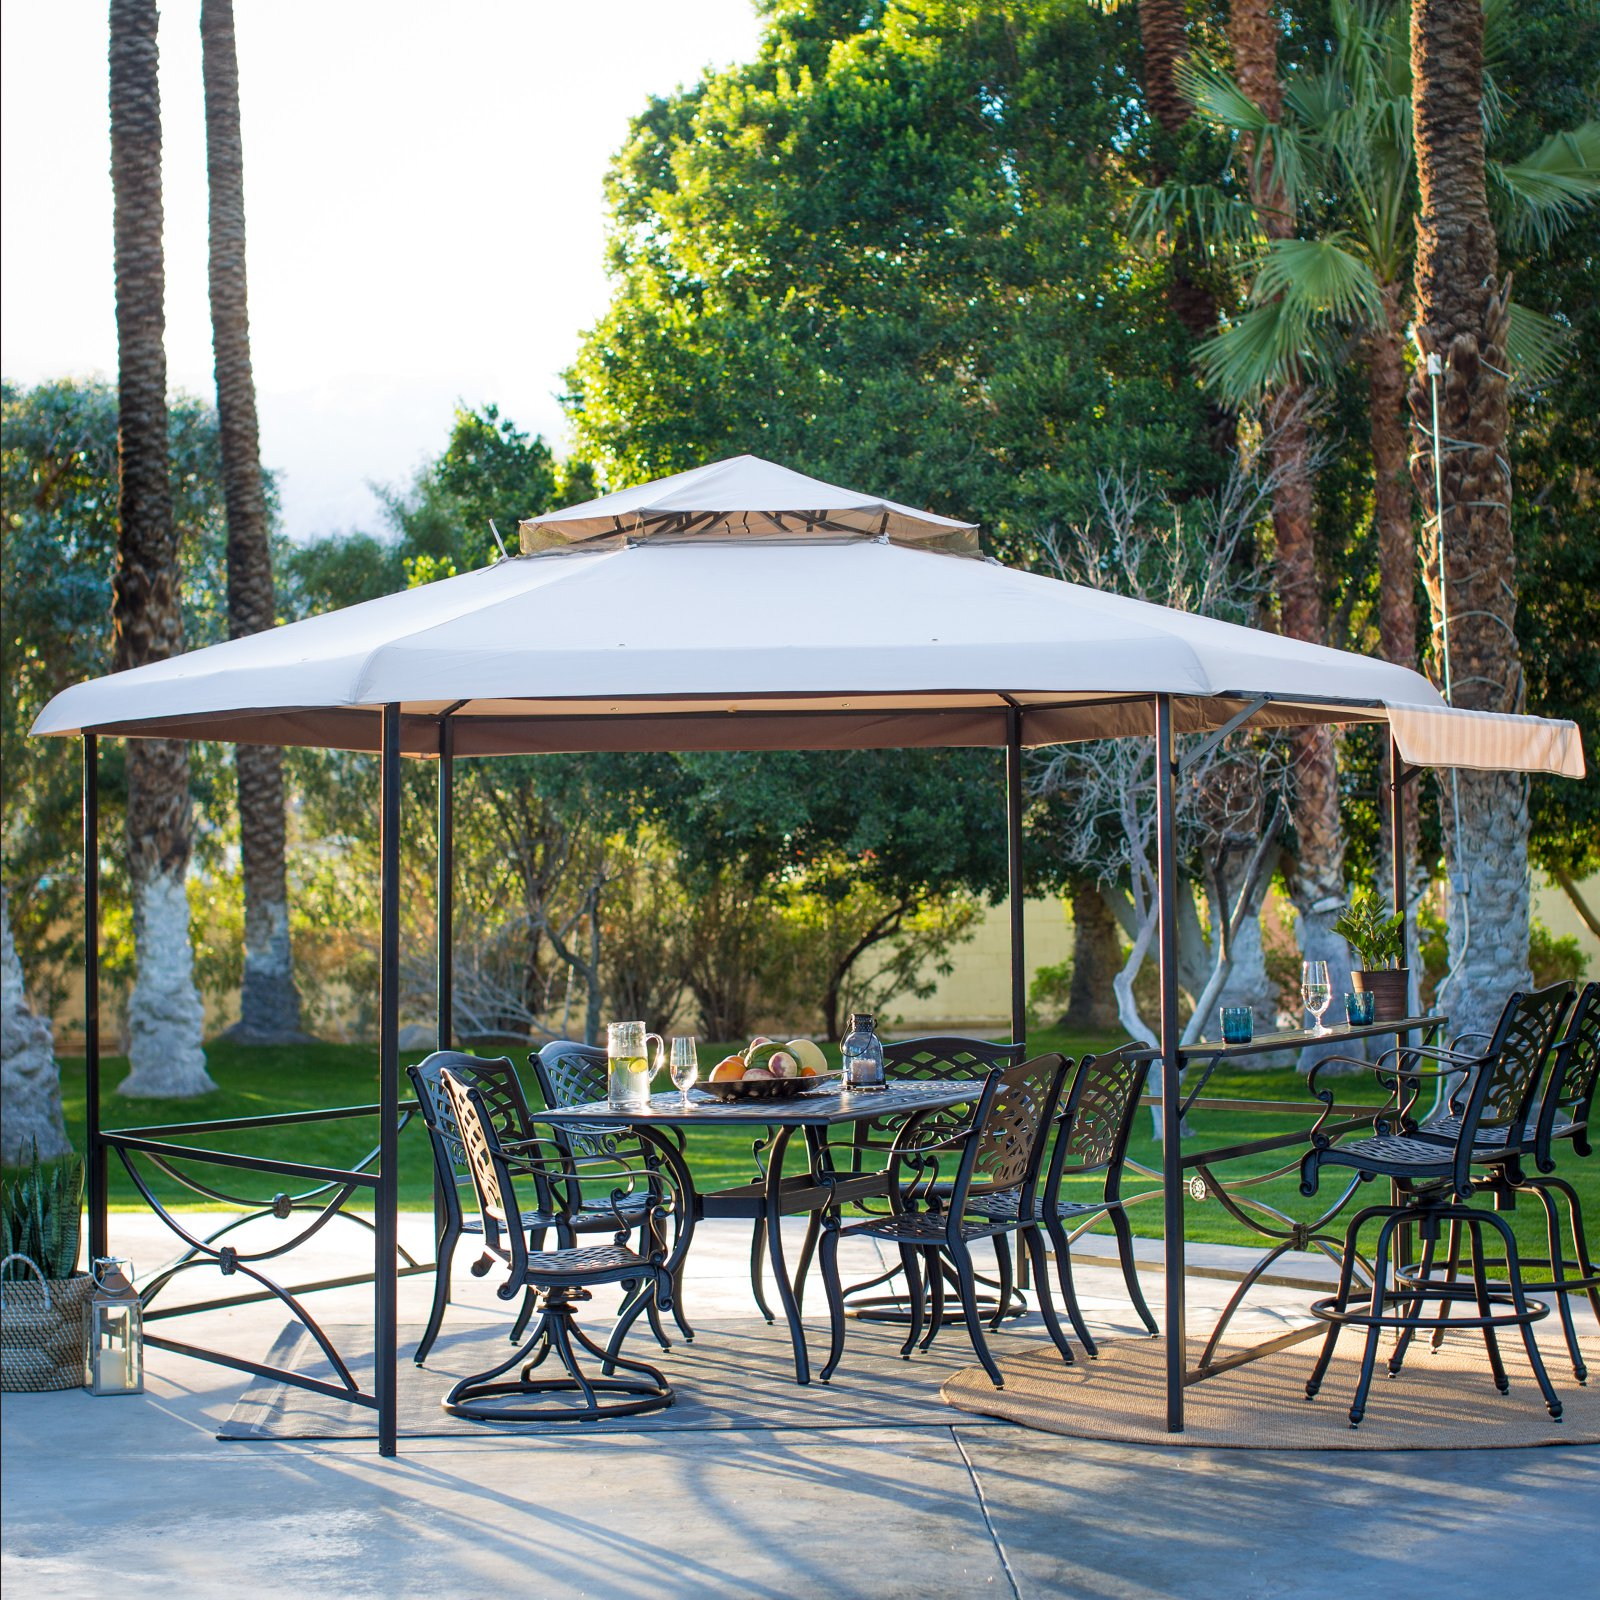 Belham Living Crawford 13 x 11 ft. Hexagon Gazebo Canopy by